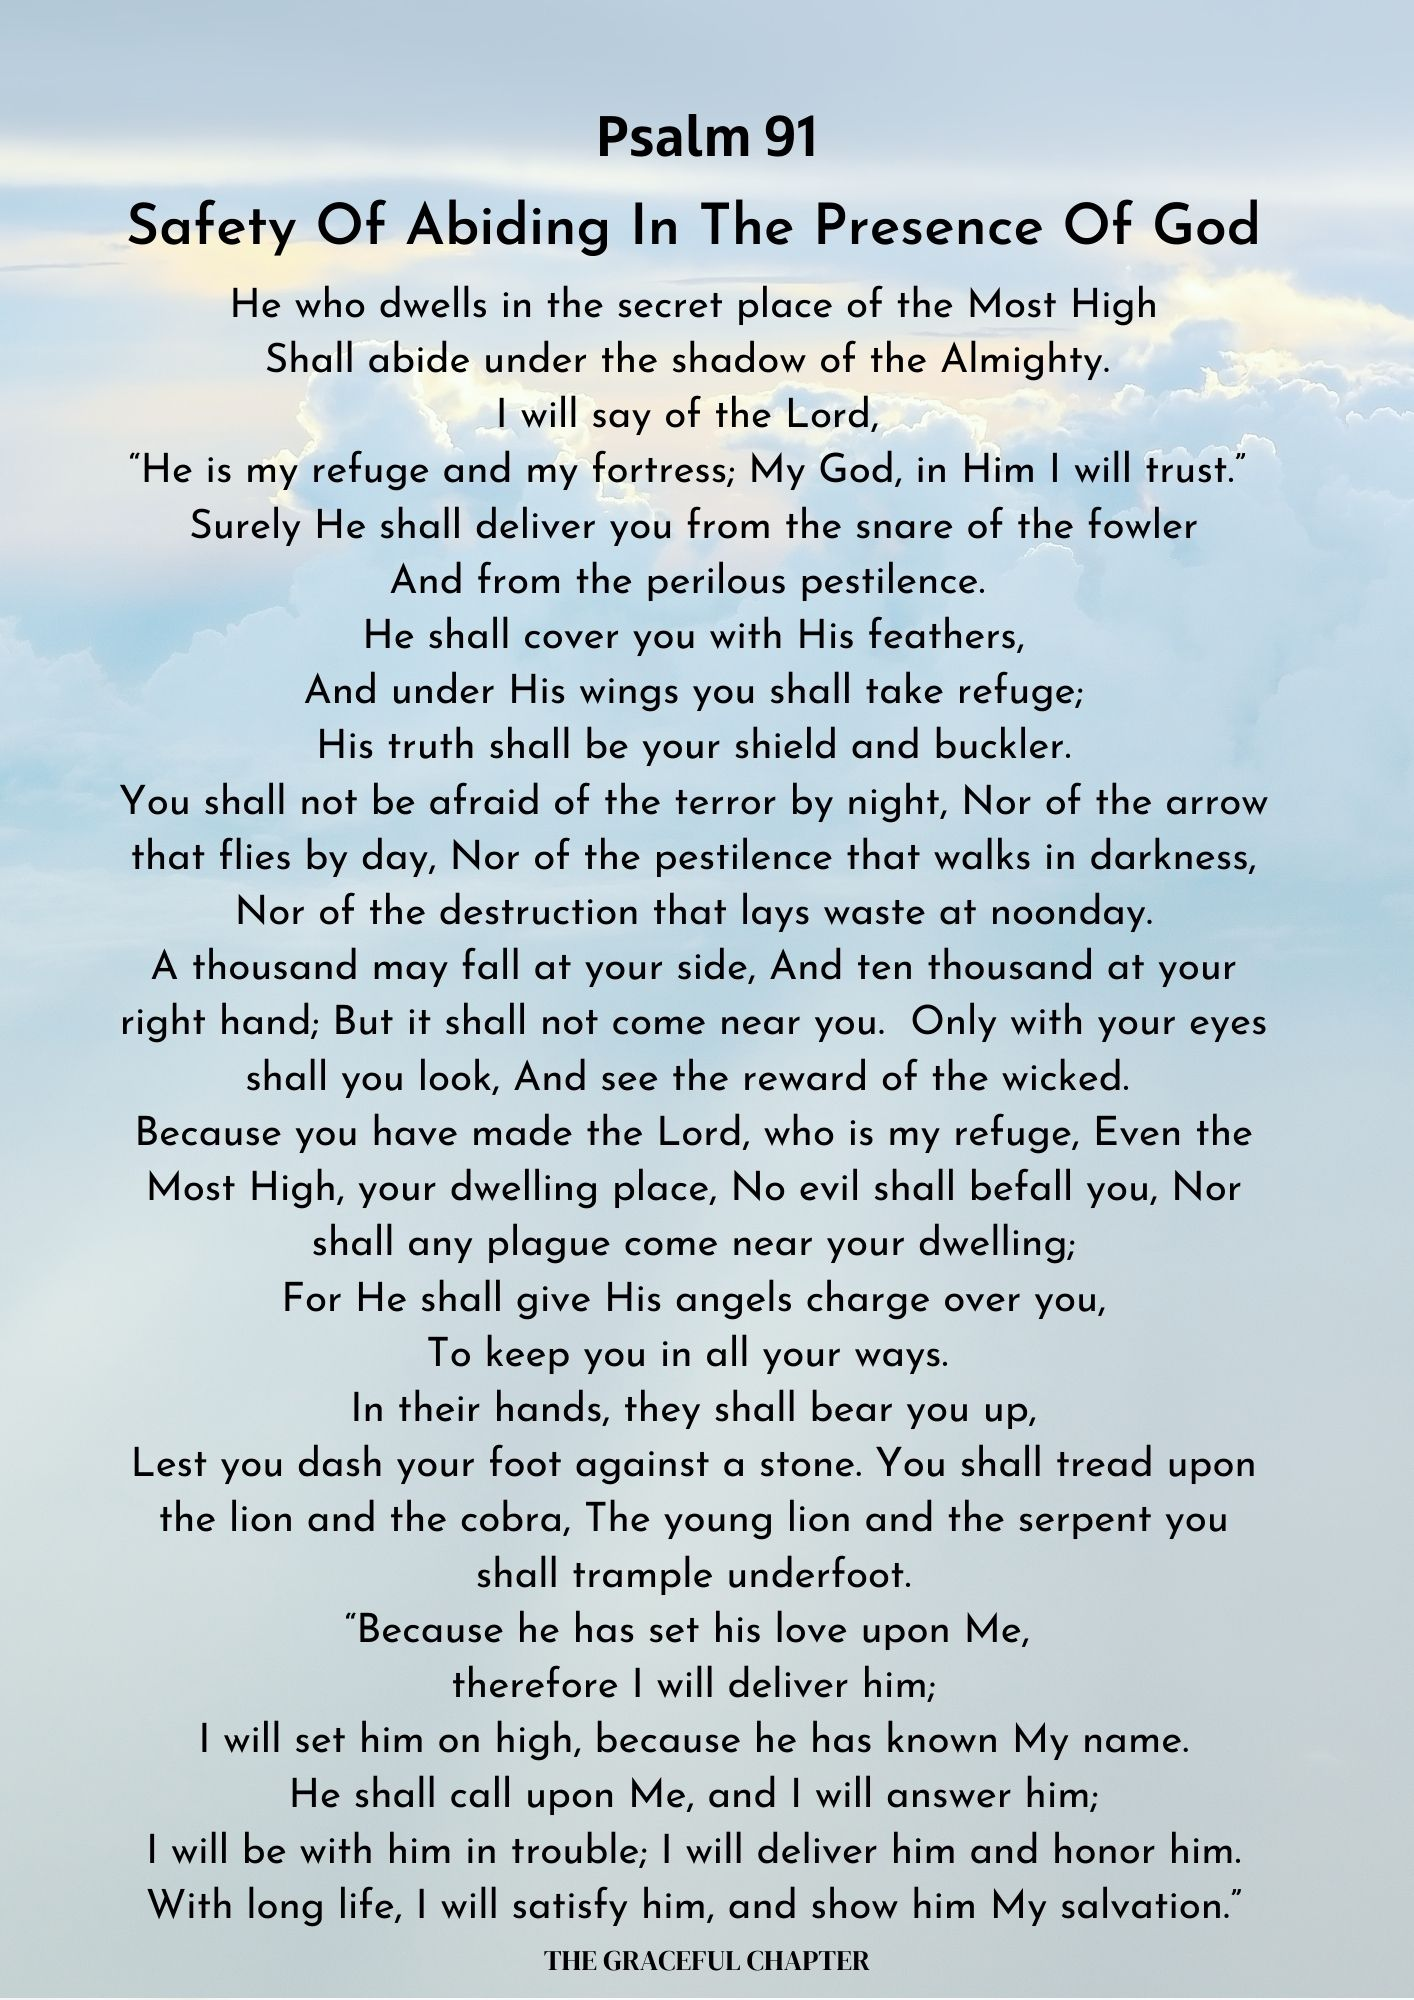 Psalm 91 - Safety of abiding in the presence of God